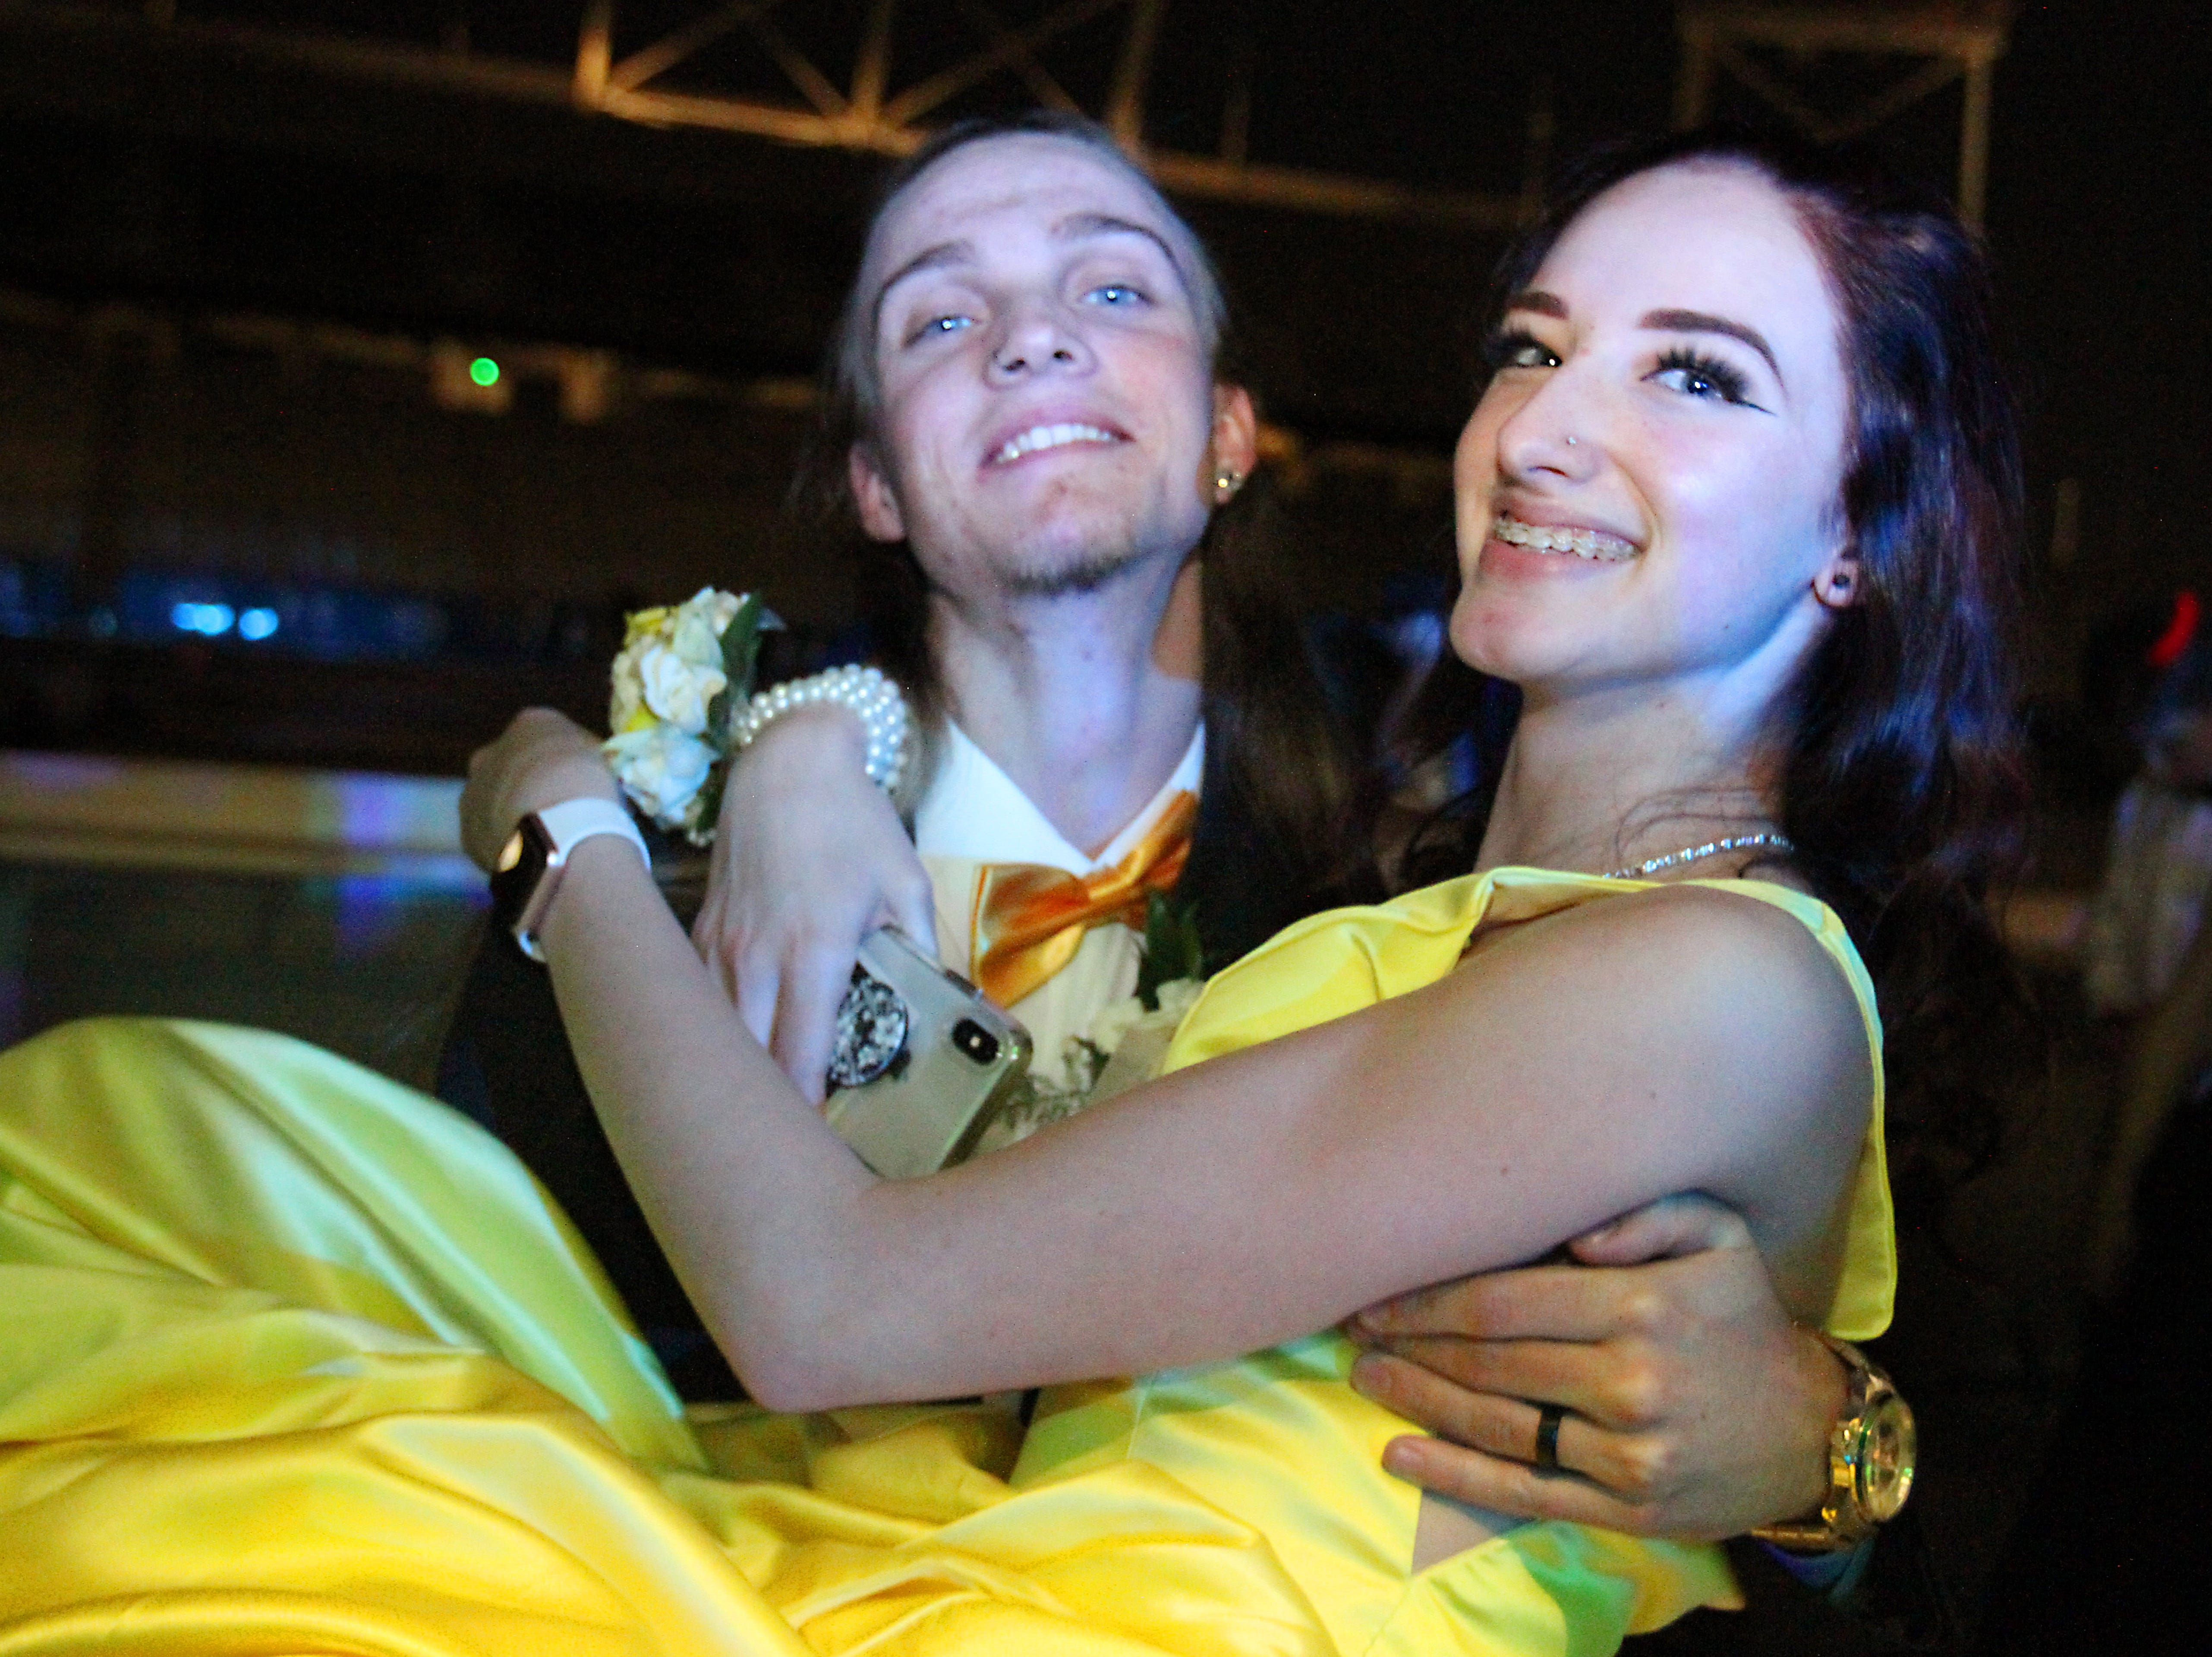 Joel Blocker / For the Coloradoan Fort Collins High School juniors, from left, Brodi Henkelman and Ashlynn Bledsoe take a moment for photo during the LambkinsÕ prom held at Canvas stadium Saturday night.